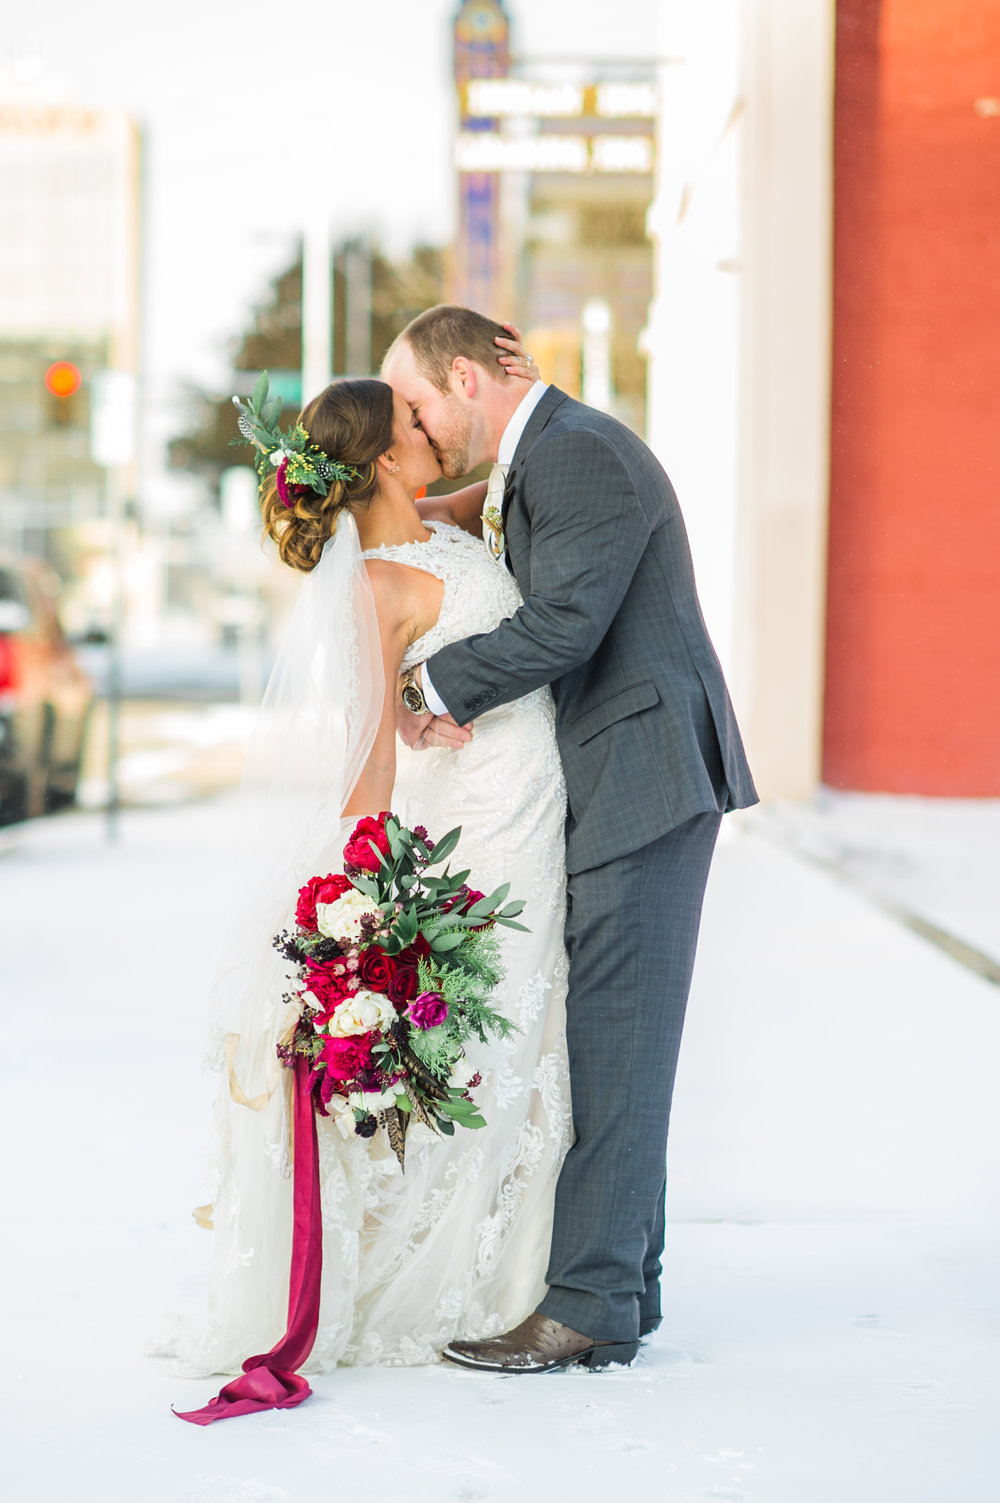 Downtown Industrial Wedding with Surprise Snowfall -